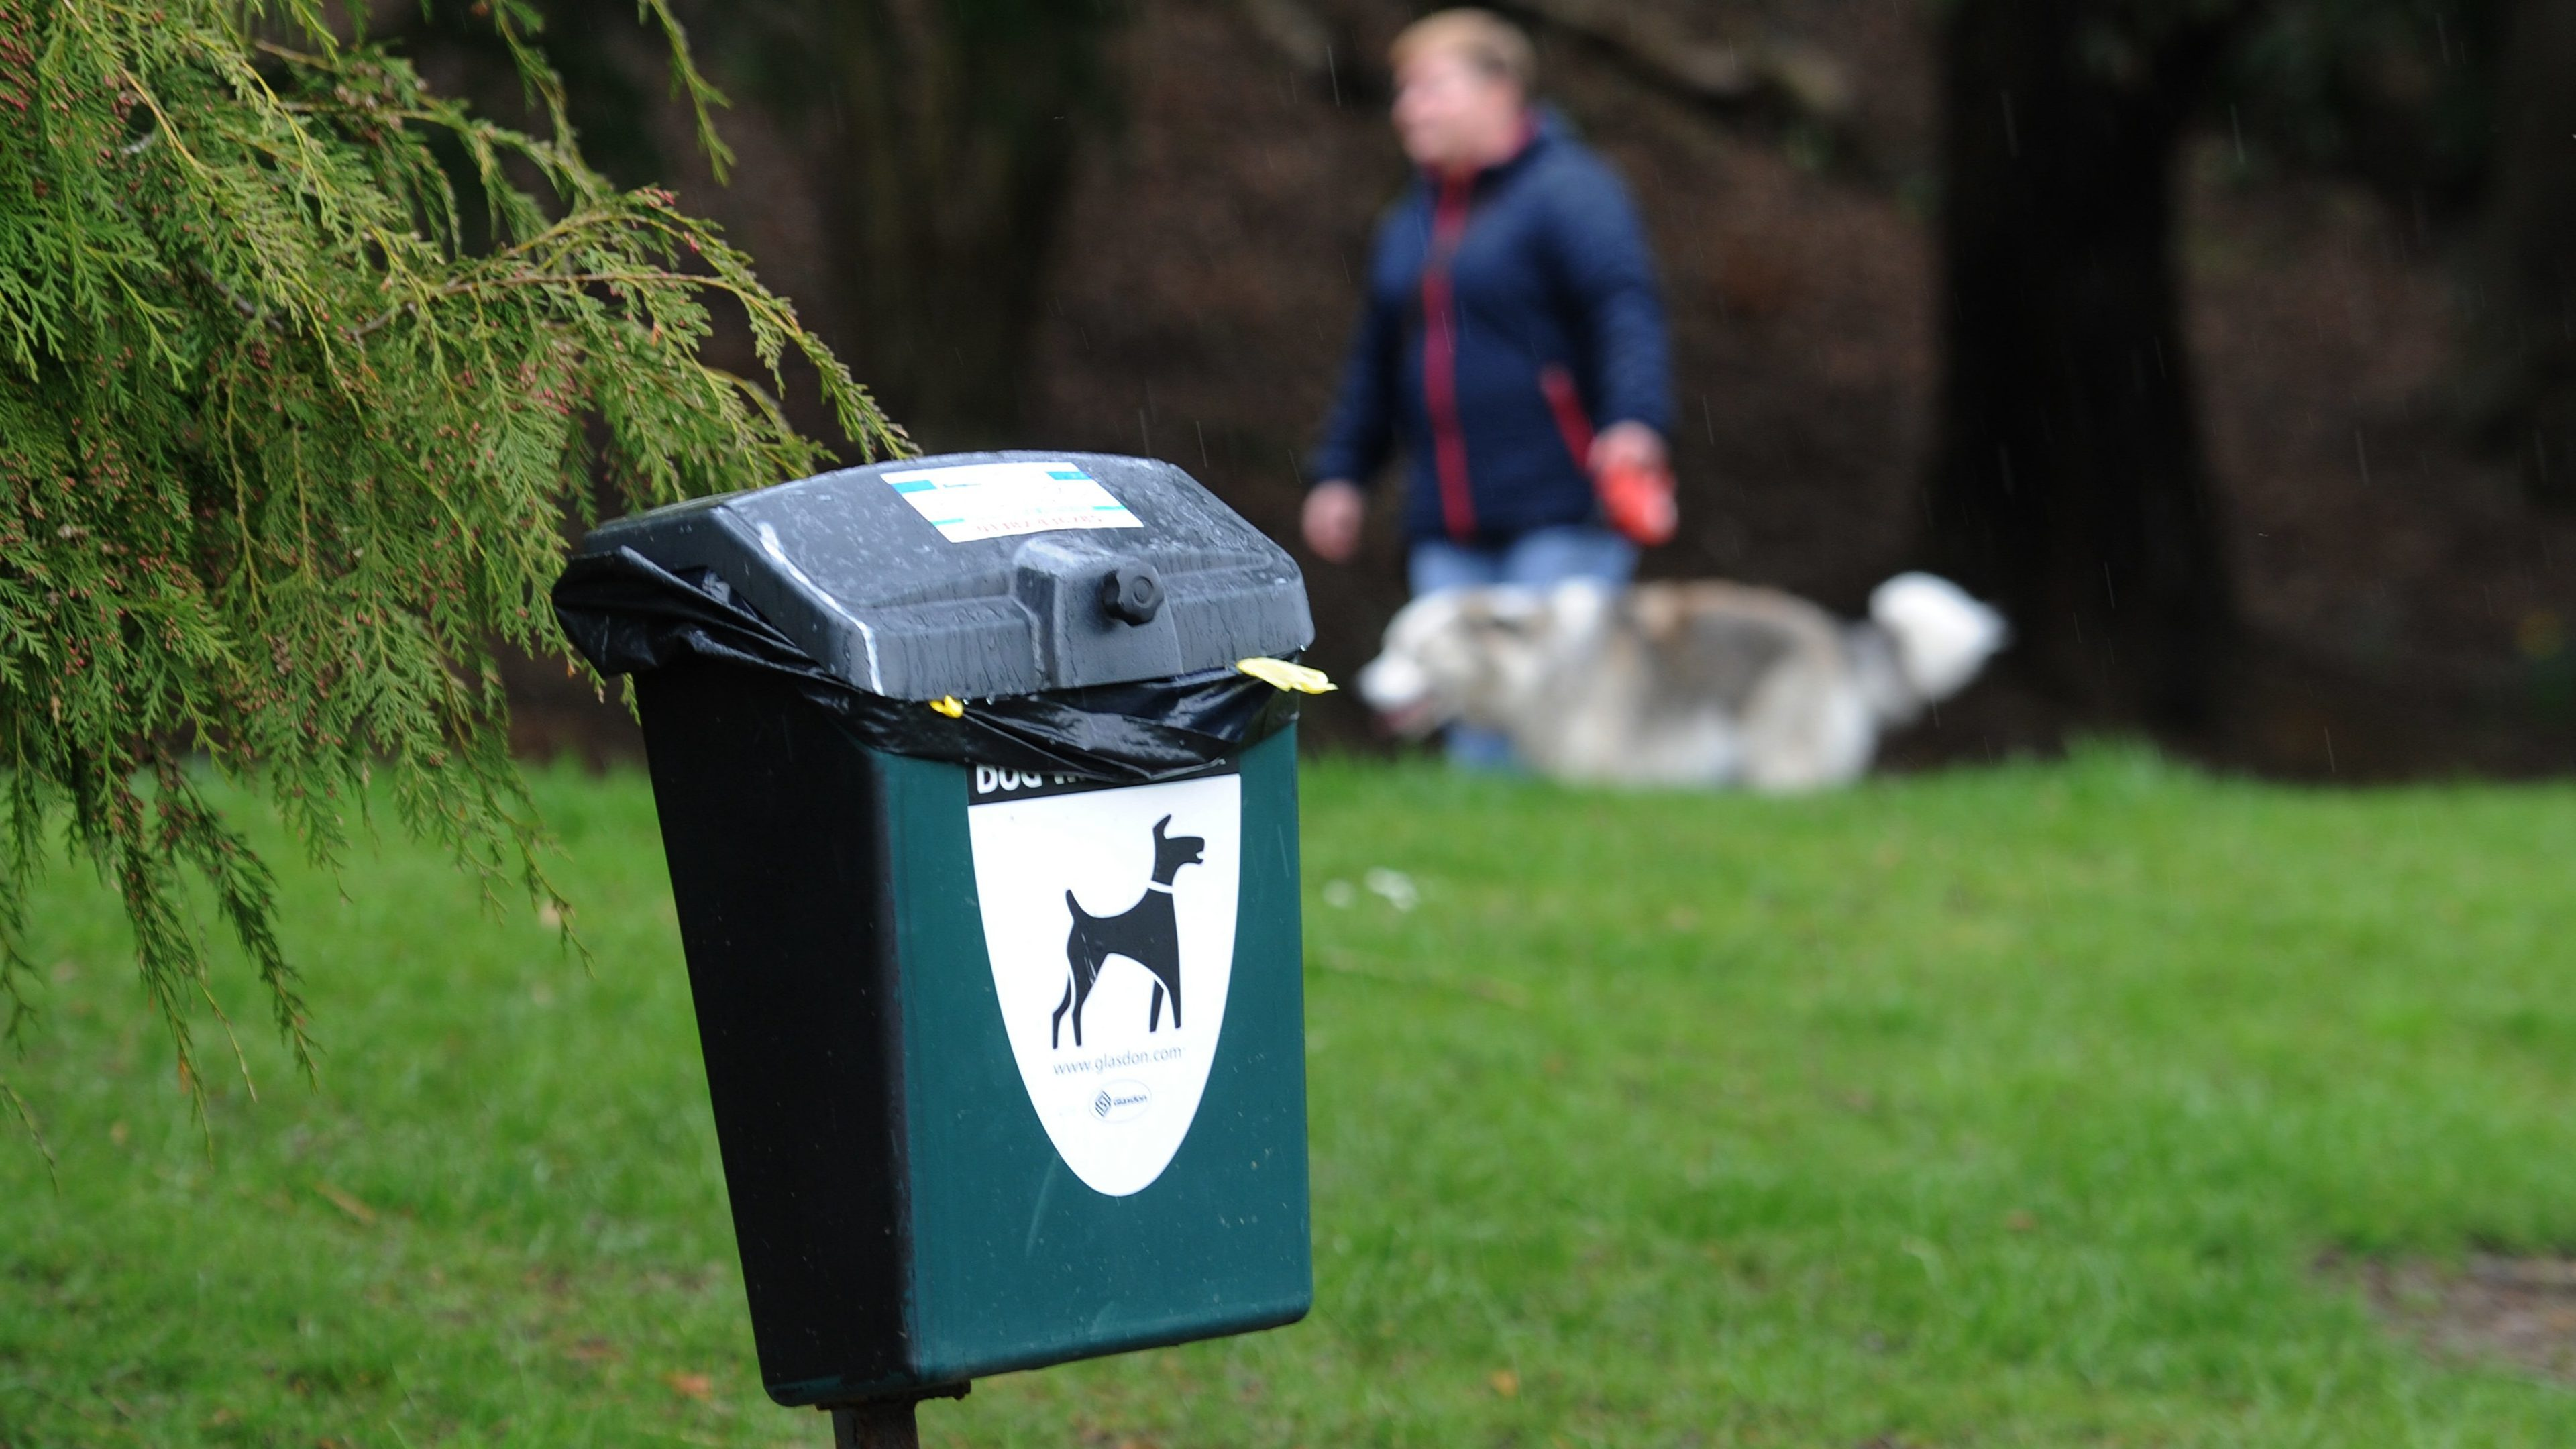 The initiative would also tackle dog fouling